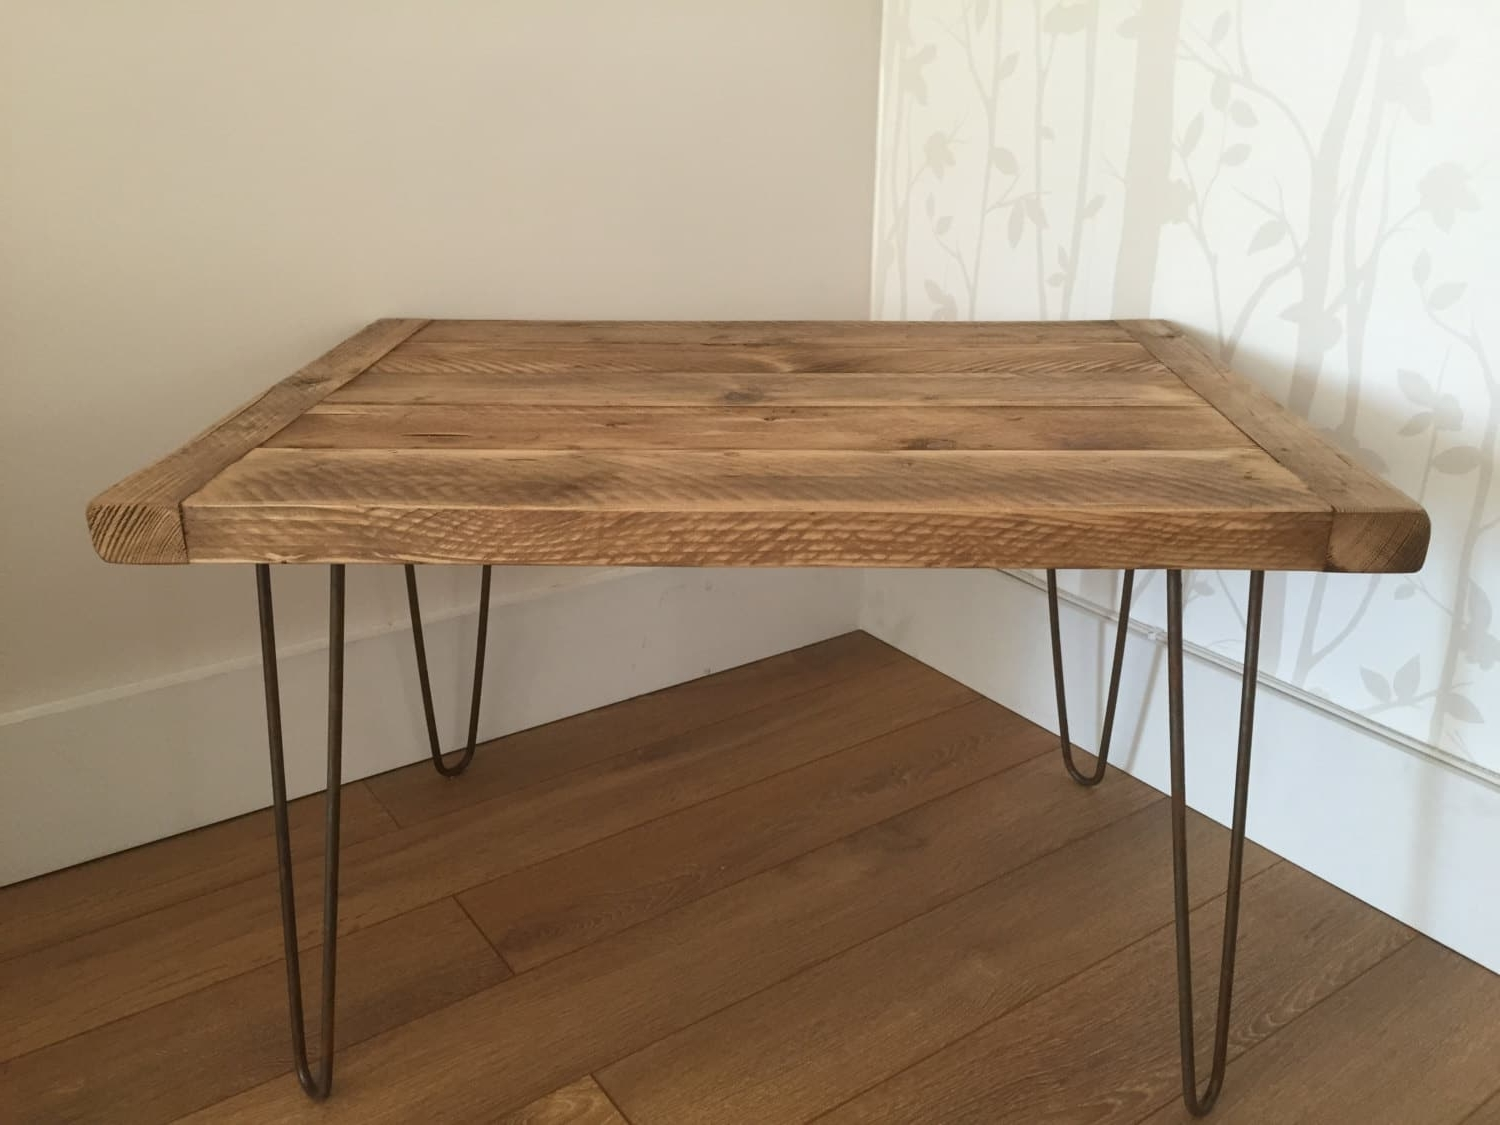 Reclaimed Rustic Solid Pine Coffee Table With Metal Hairpin Legs For Latest Reclaimed Pine & Iron Coffee Tables (View 12 of 20)